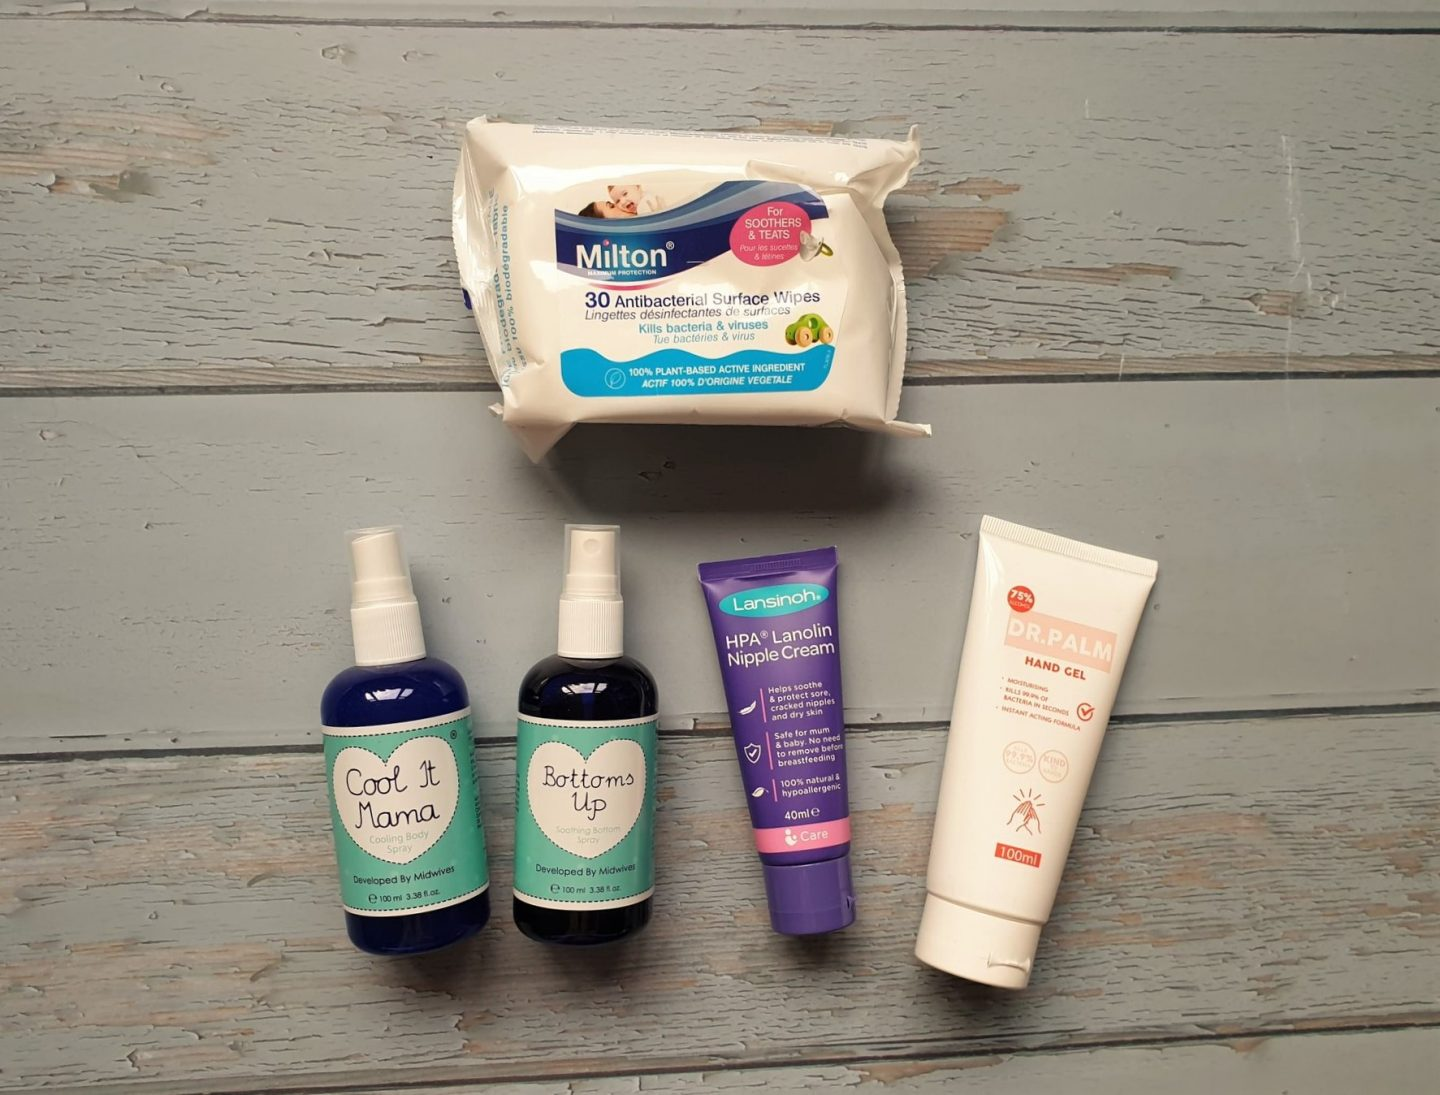 Creams, lotions and wipes from hospital bag